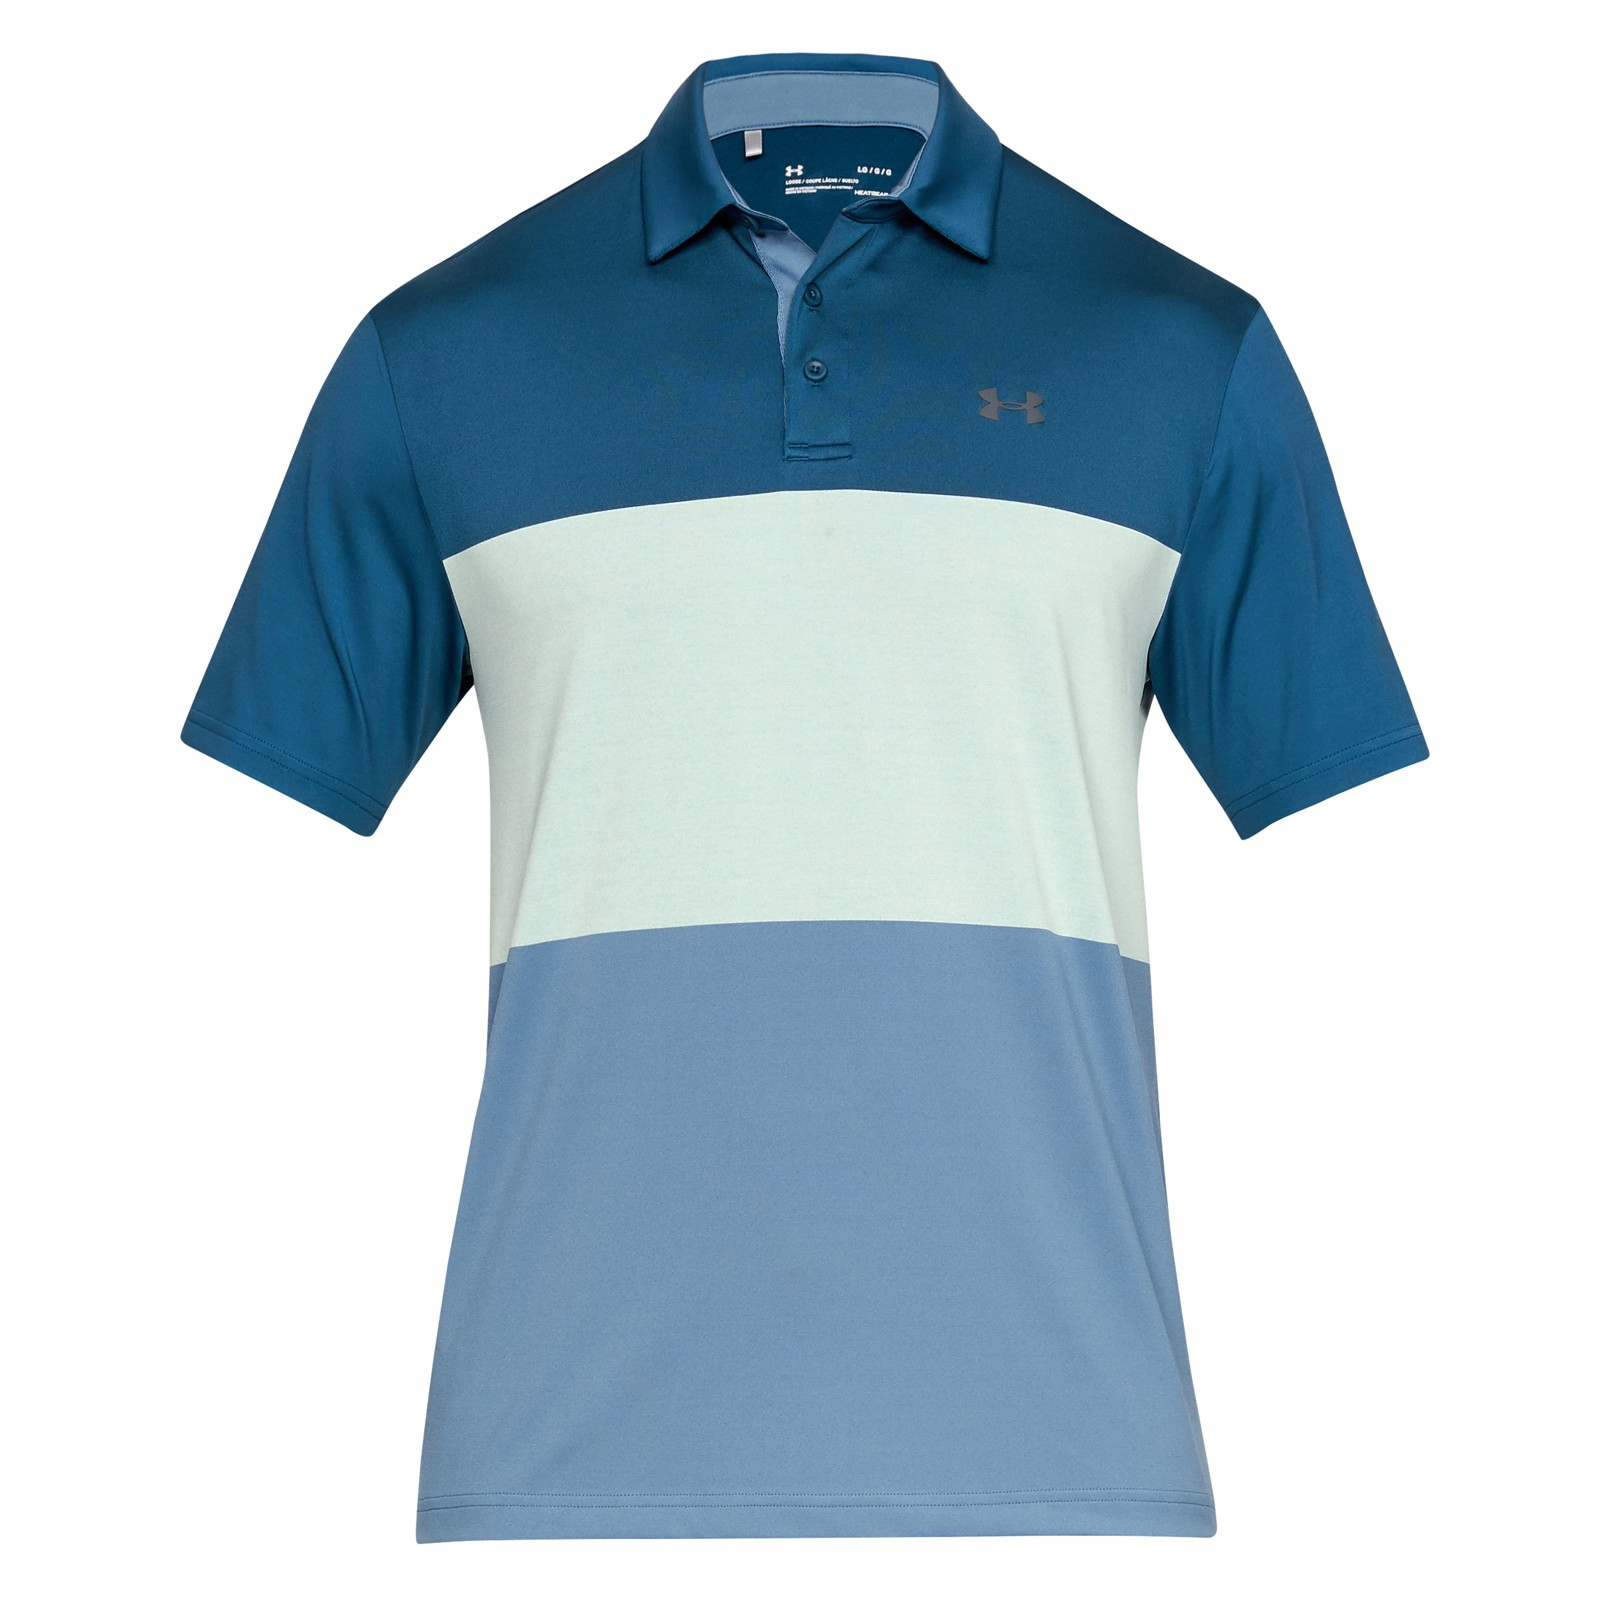 6616f31db Under Armour Playoff 2.0 Polo - Heritage